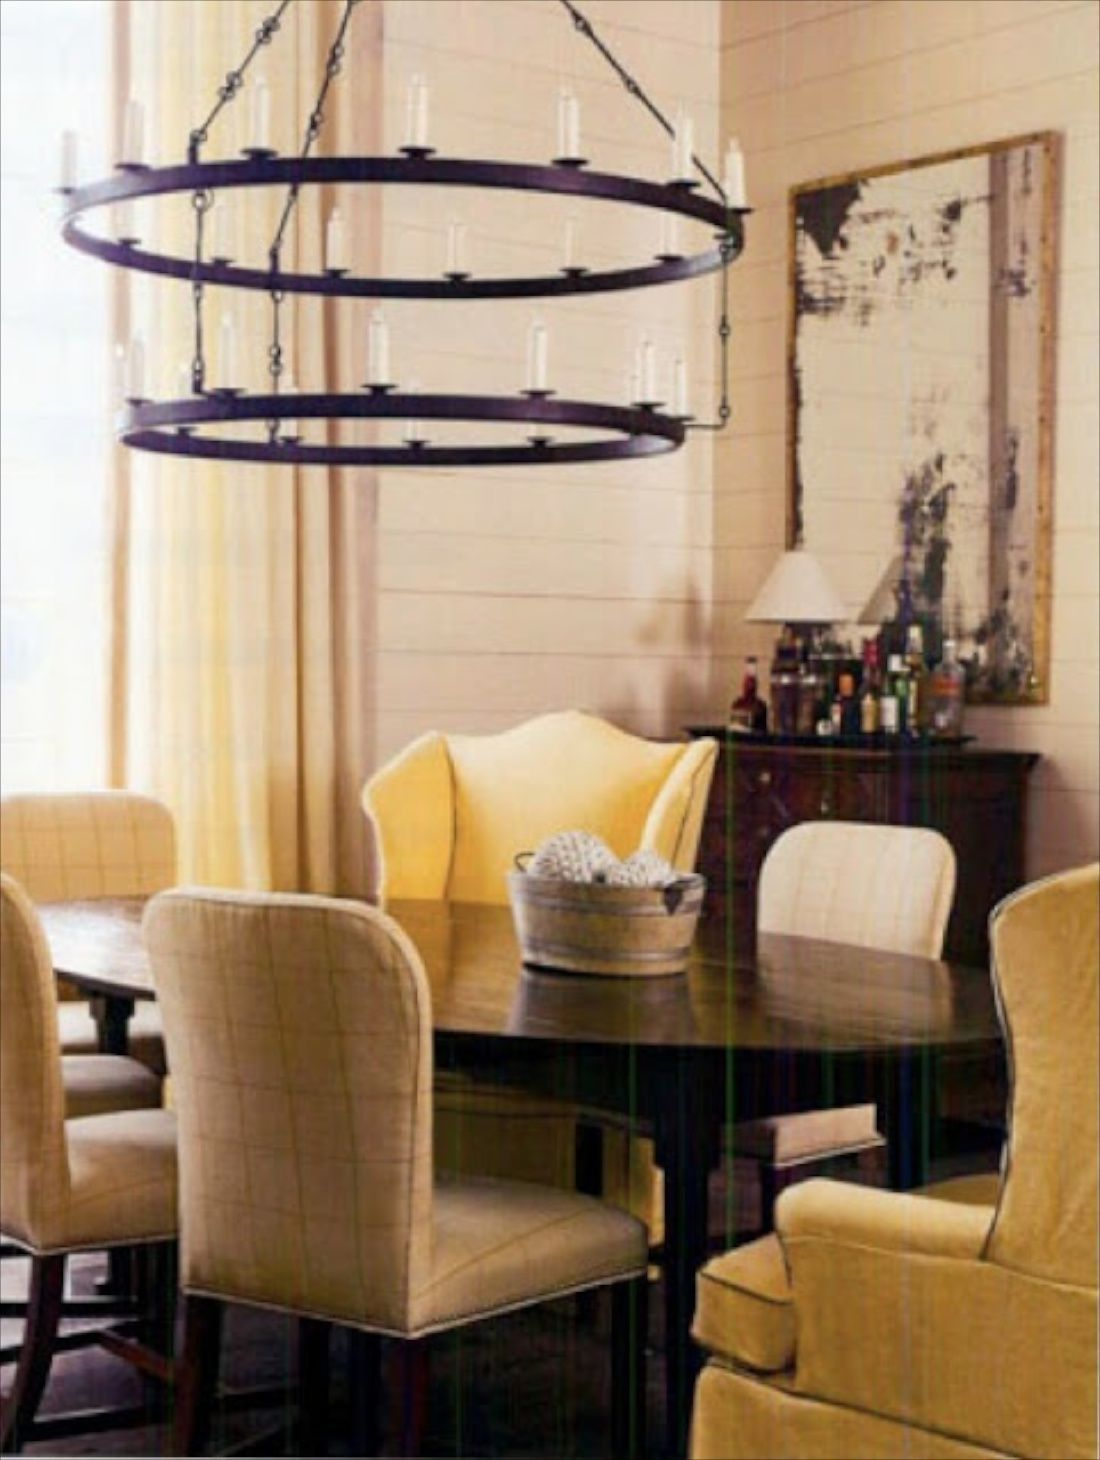 Southern Living – Best New Home 2013 images